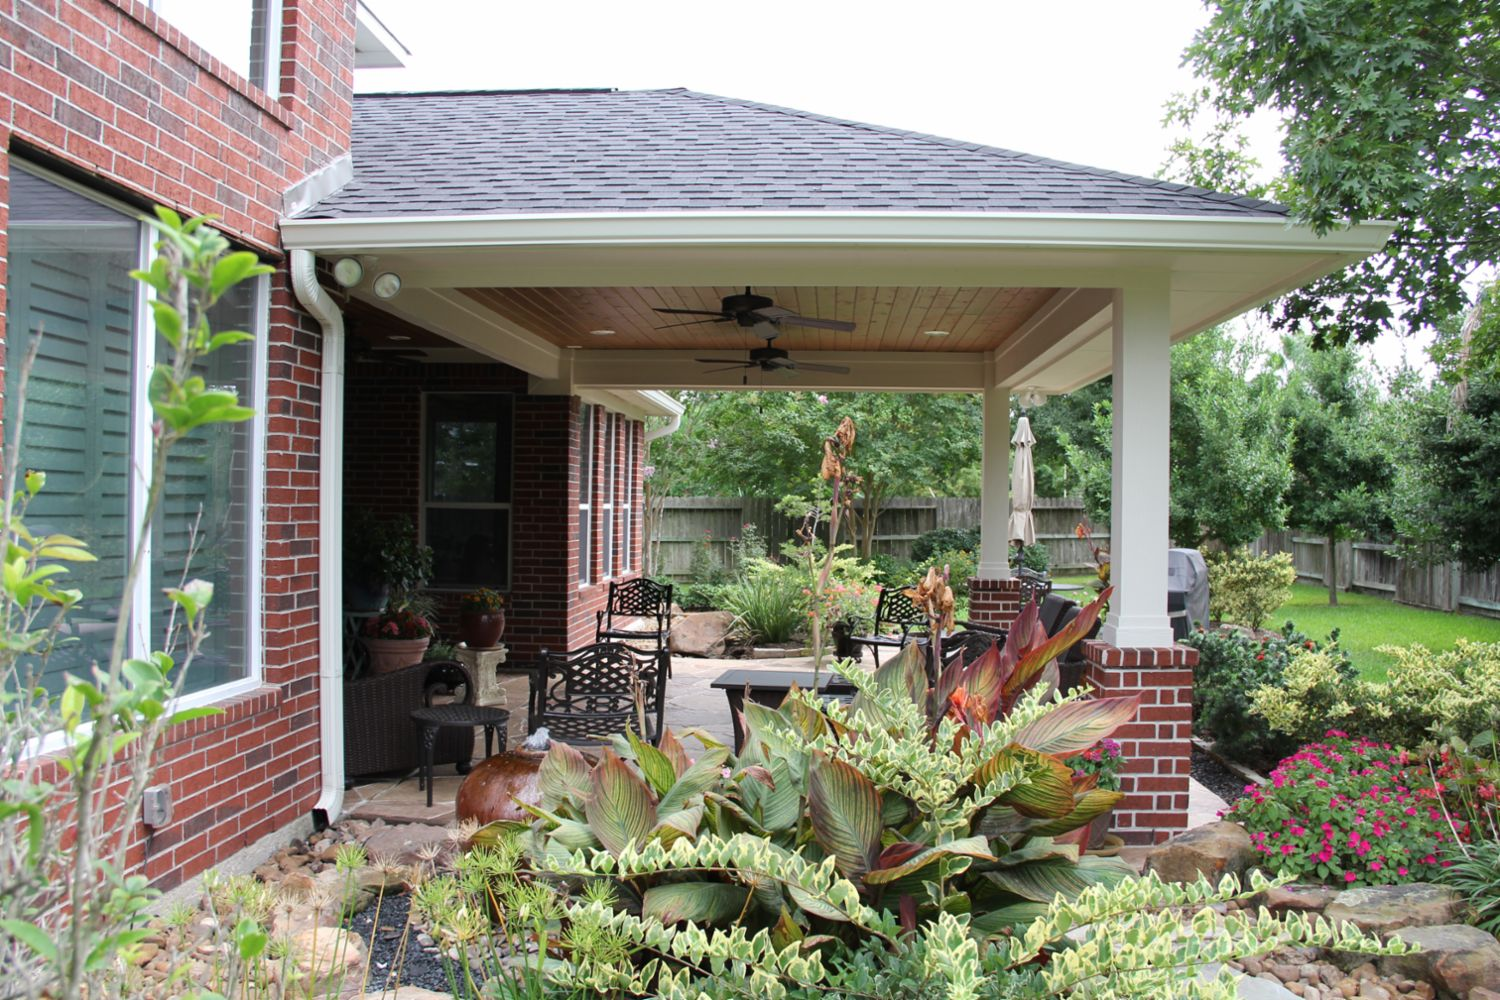 Patio covers outdoor kitchens fire features in katy tx for Tradition outdoor living